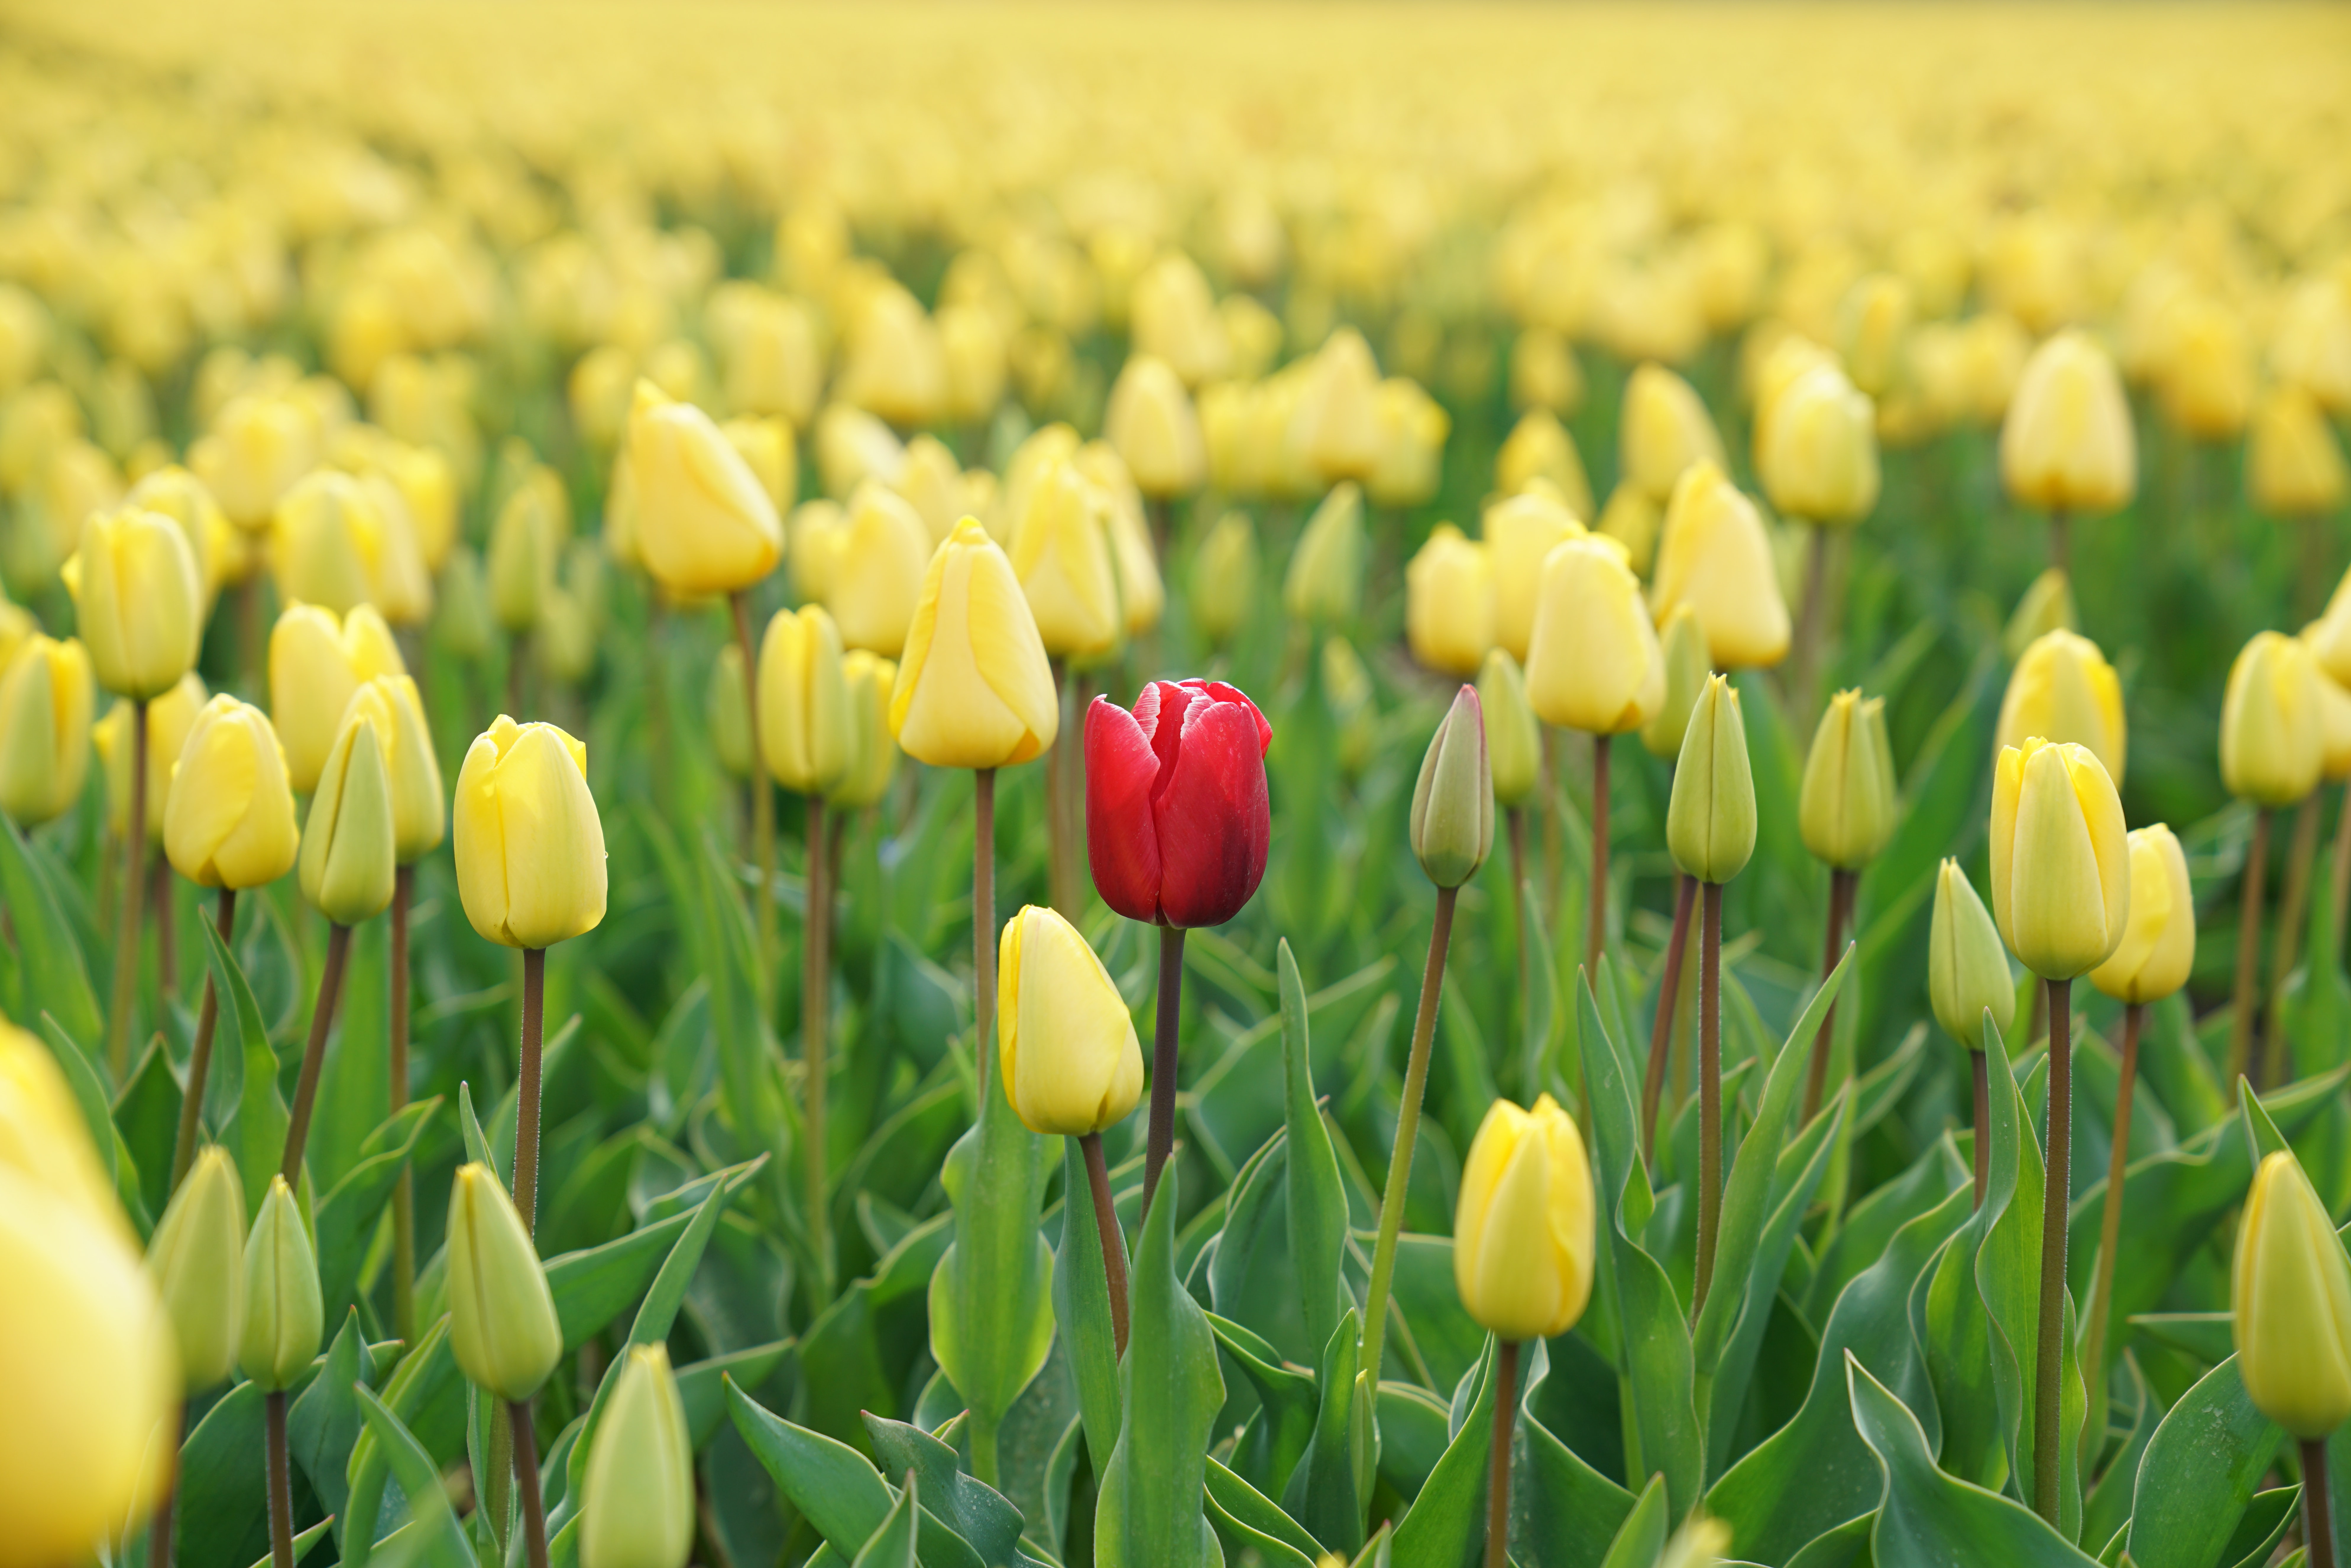 One red tulip in a field of yellow tulips